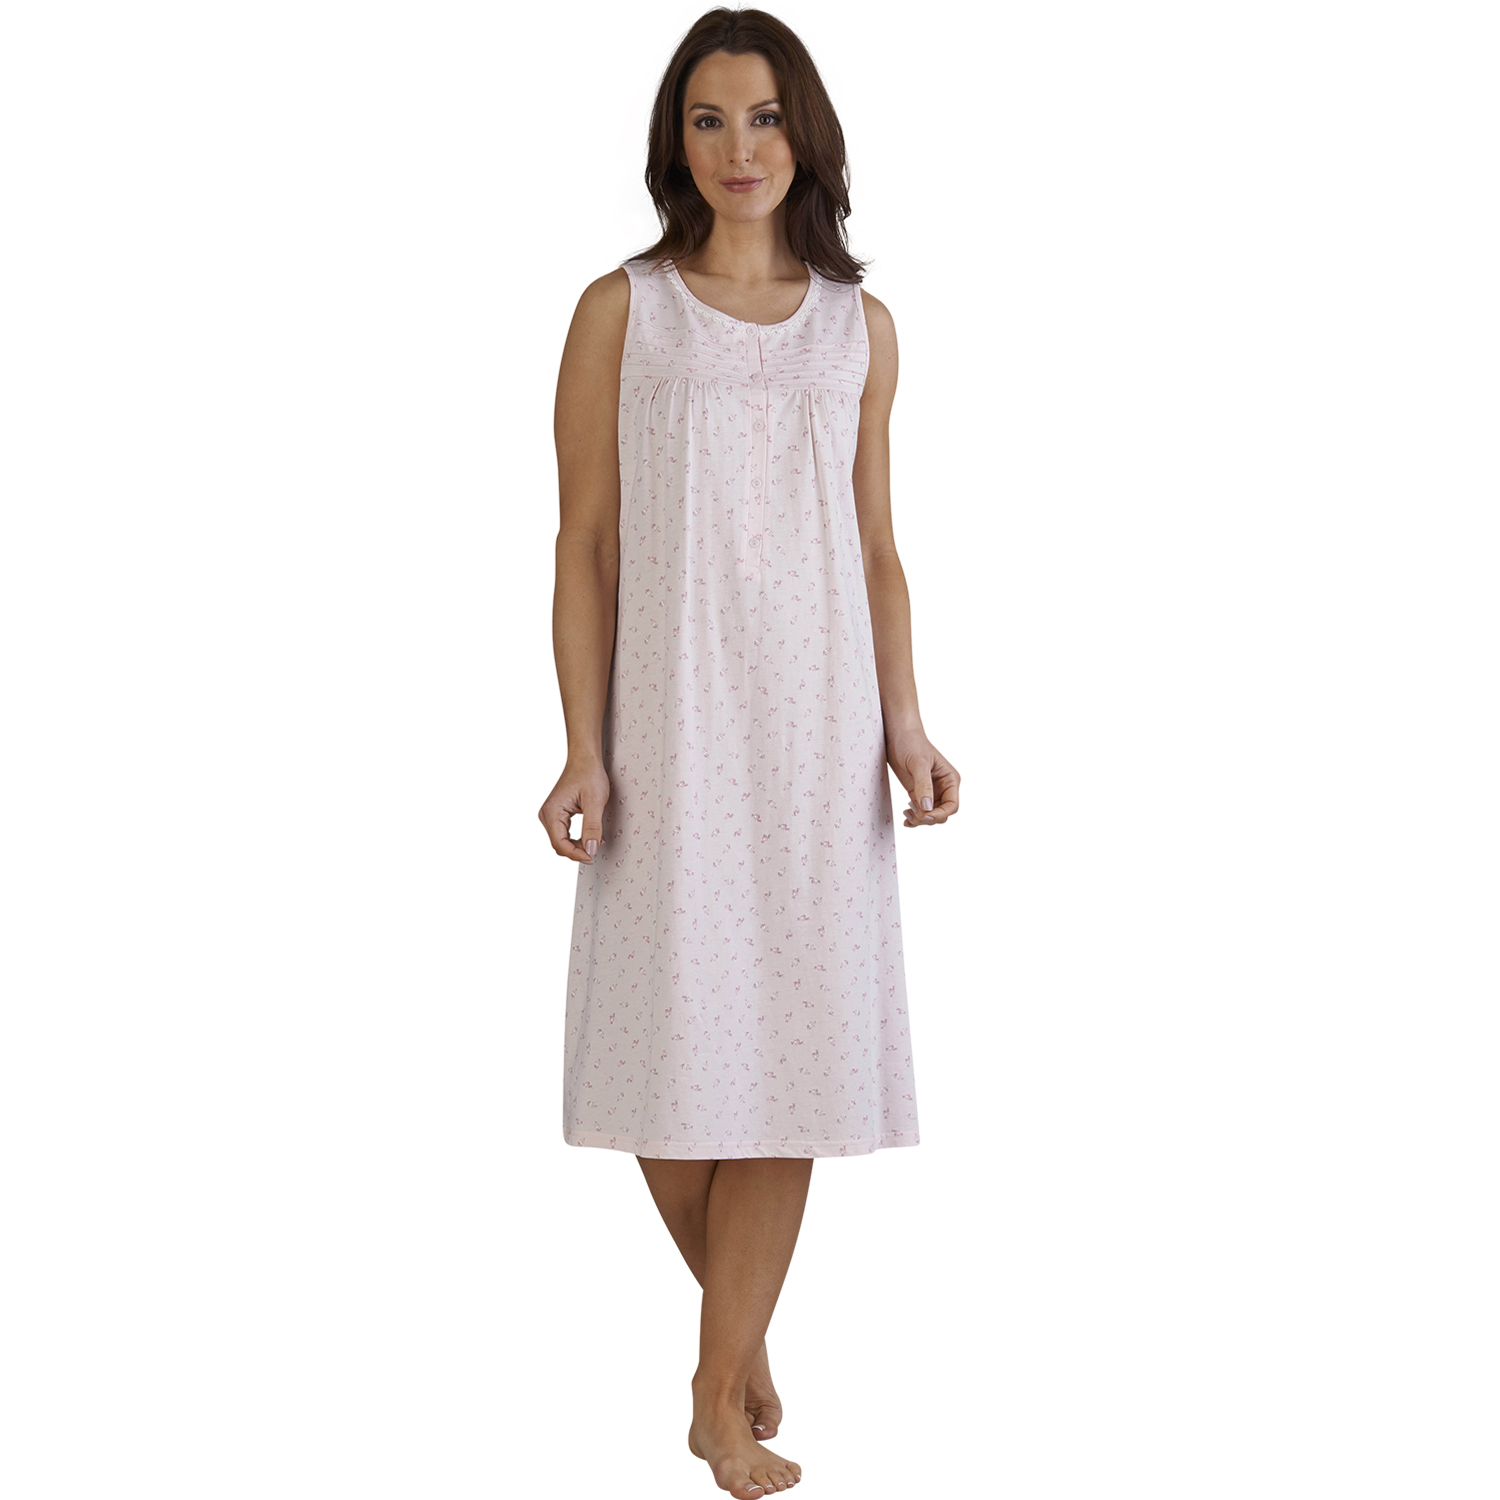 Find here Cotton Nightgown, Ladies Cotton Nighty manufacturers, suppliers & exporters in India. Get contact details & address of companies manufacturing and supplying Cotton Nightgown, Ladies Cotton Nighty, Cotton Nighty across India.